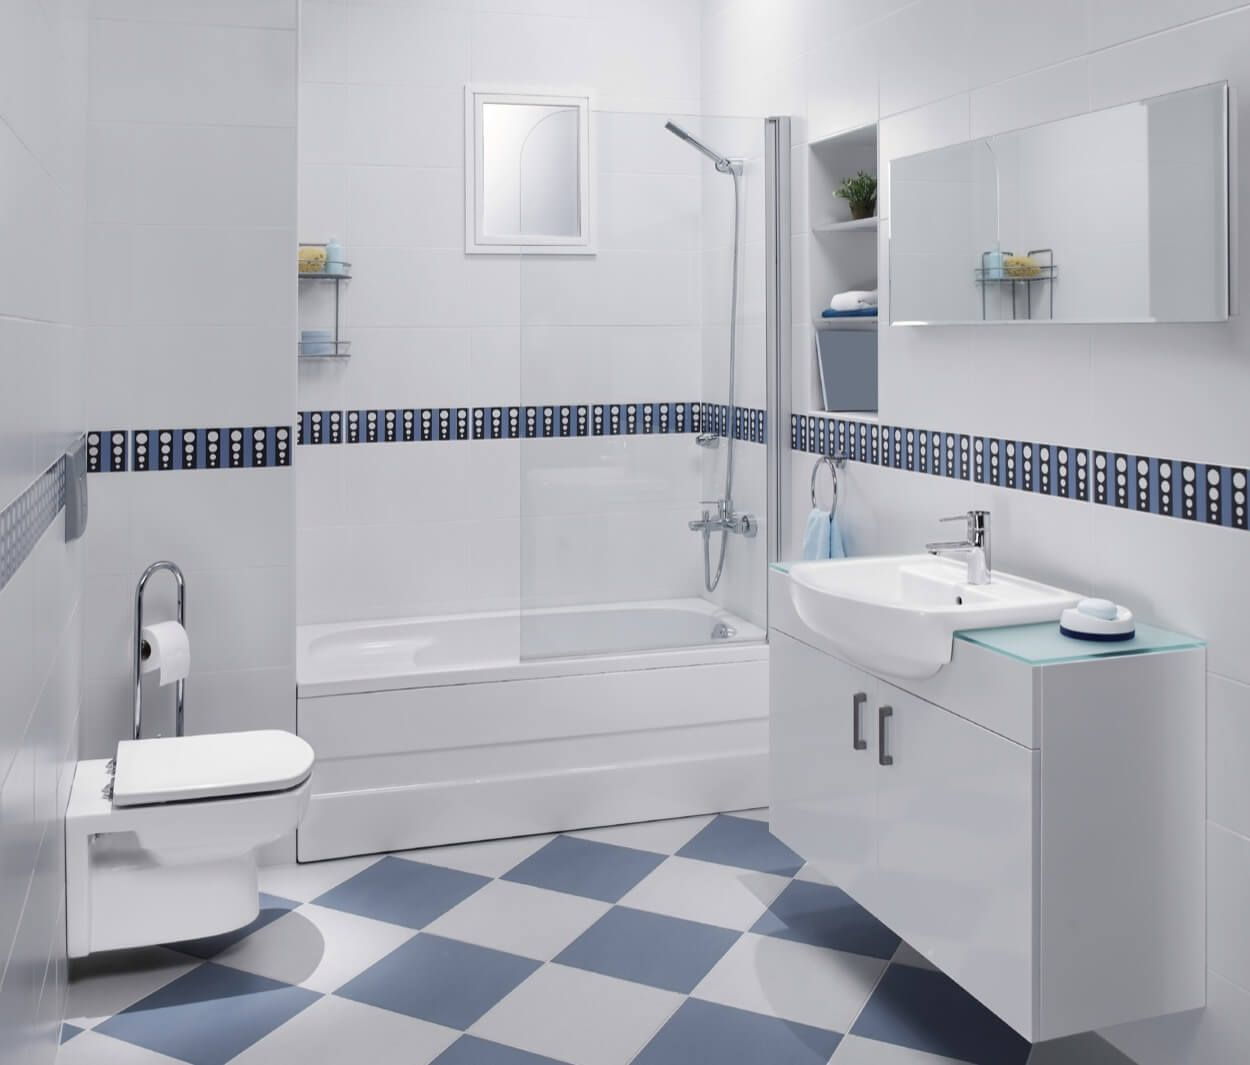 Blue And White Patterned Floor Tiles With Coordinating Border ...